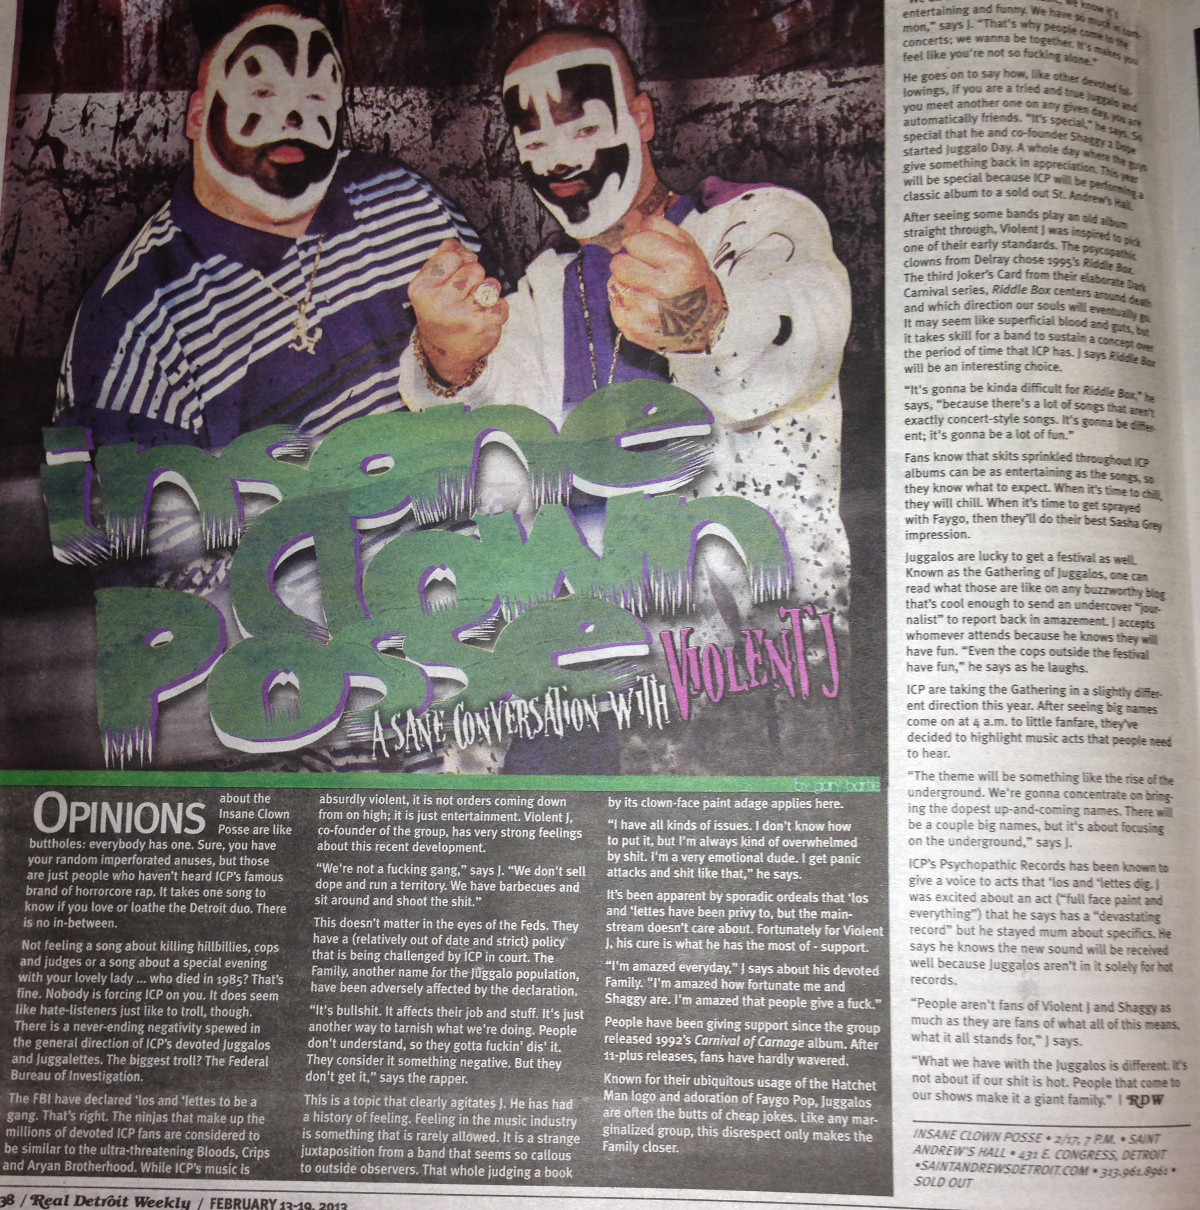 Icp Albums And Songs List Cool icp interviewed about fbi, the gathering, new artist in latest